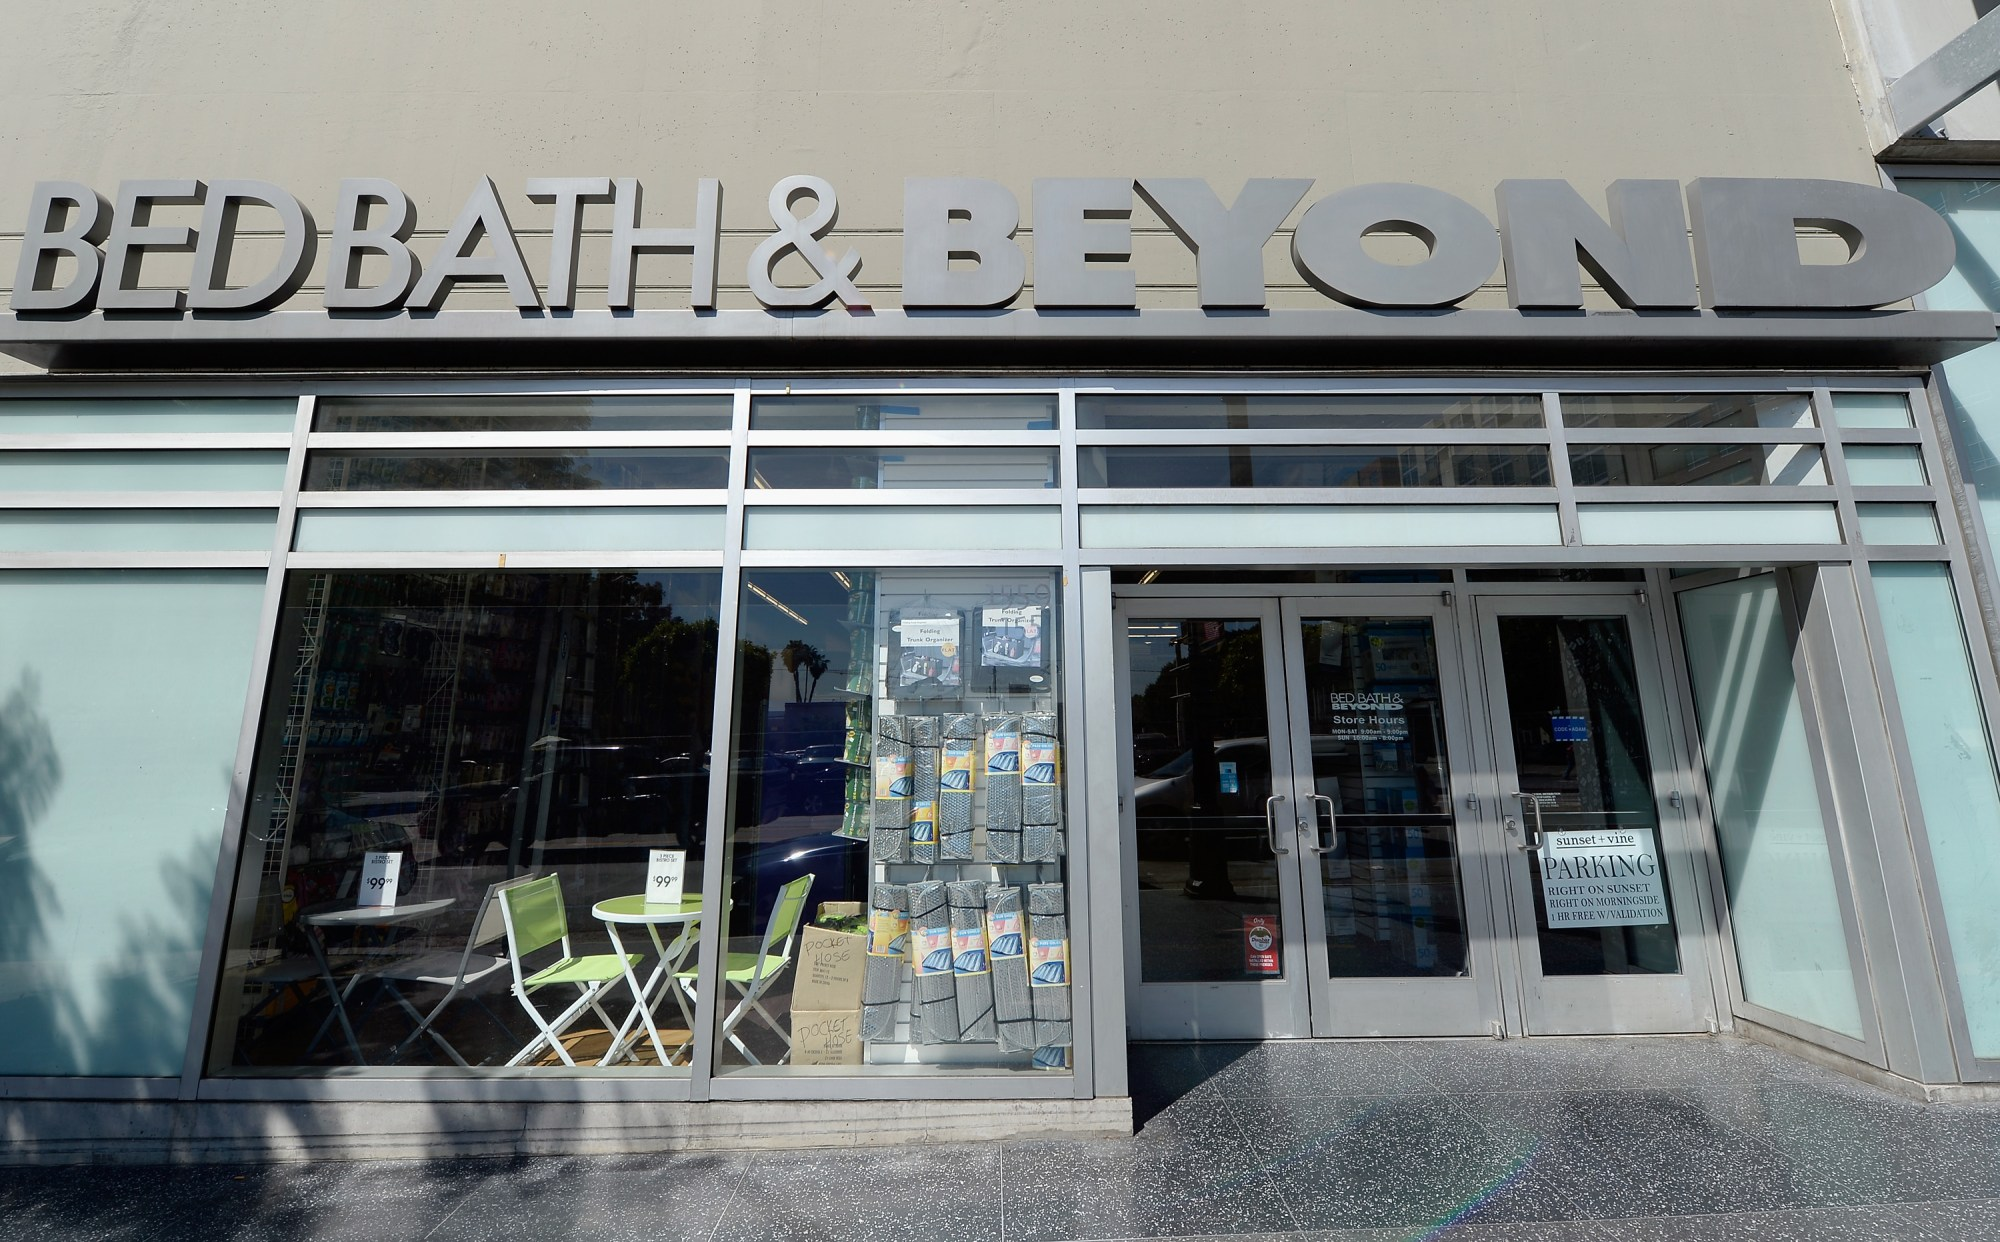 A sign at a Bed Bath & Beyond store is seen on April 10, 2013 in Los Angeles, California. (Kevork Djansezian/Getty Images)